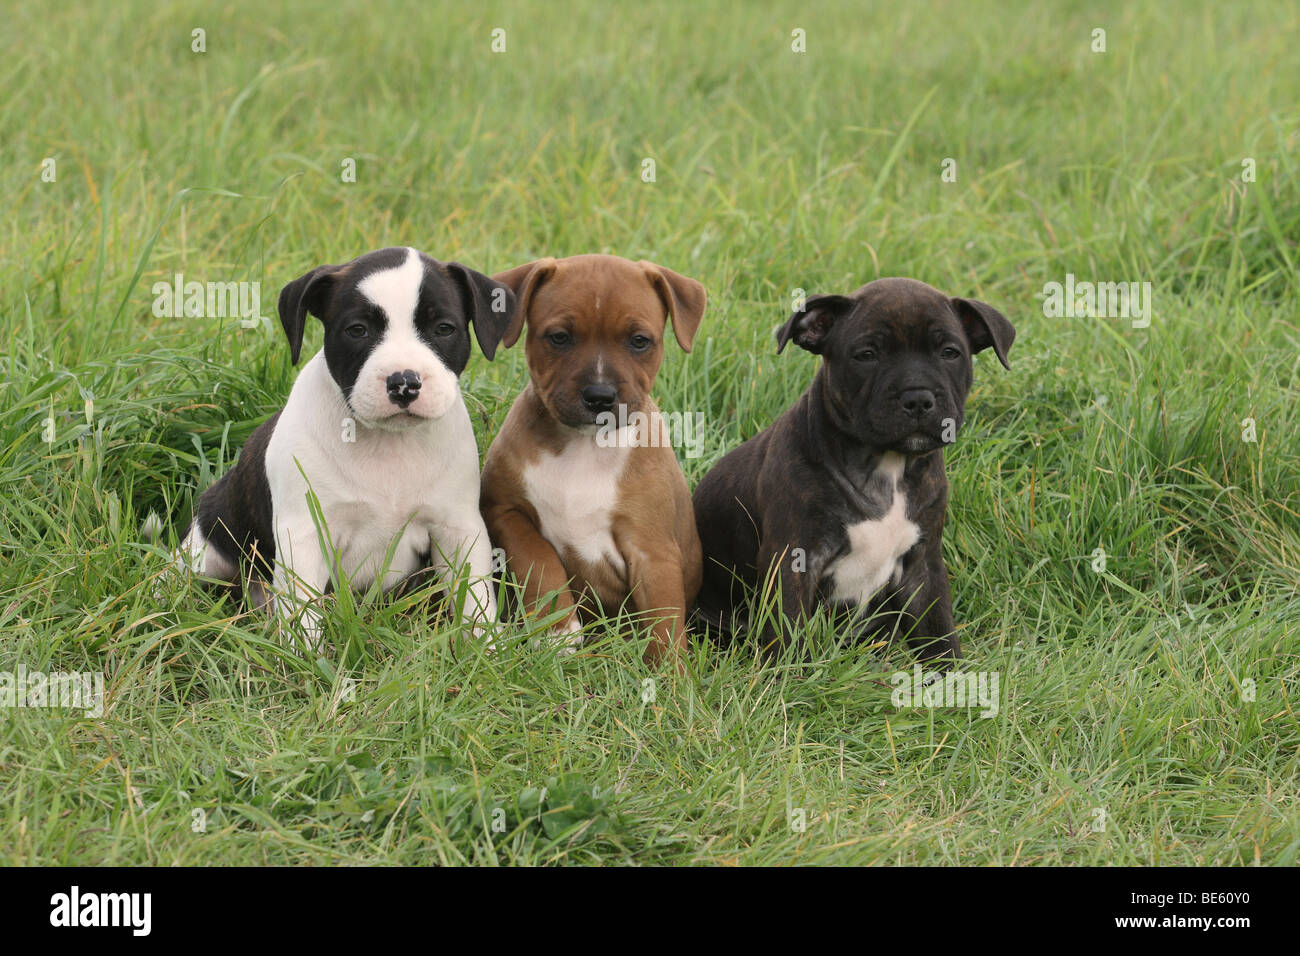 3 Staffordshire Bull Terrier puppies, 6 weeks old, sitting side by side on the lawn - Stock Image